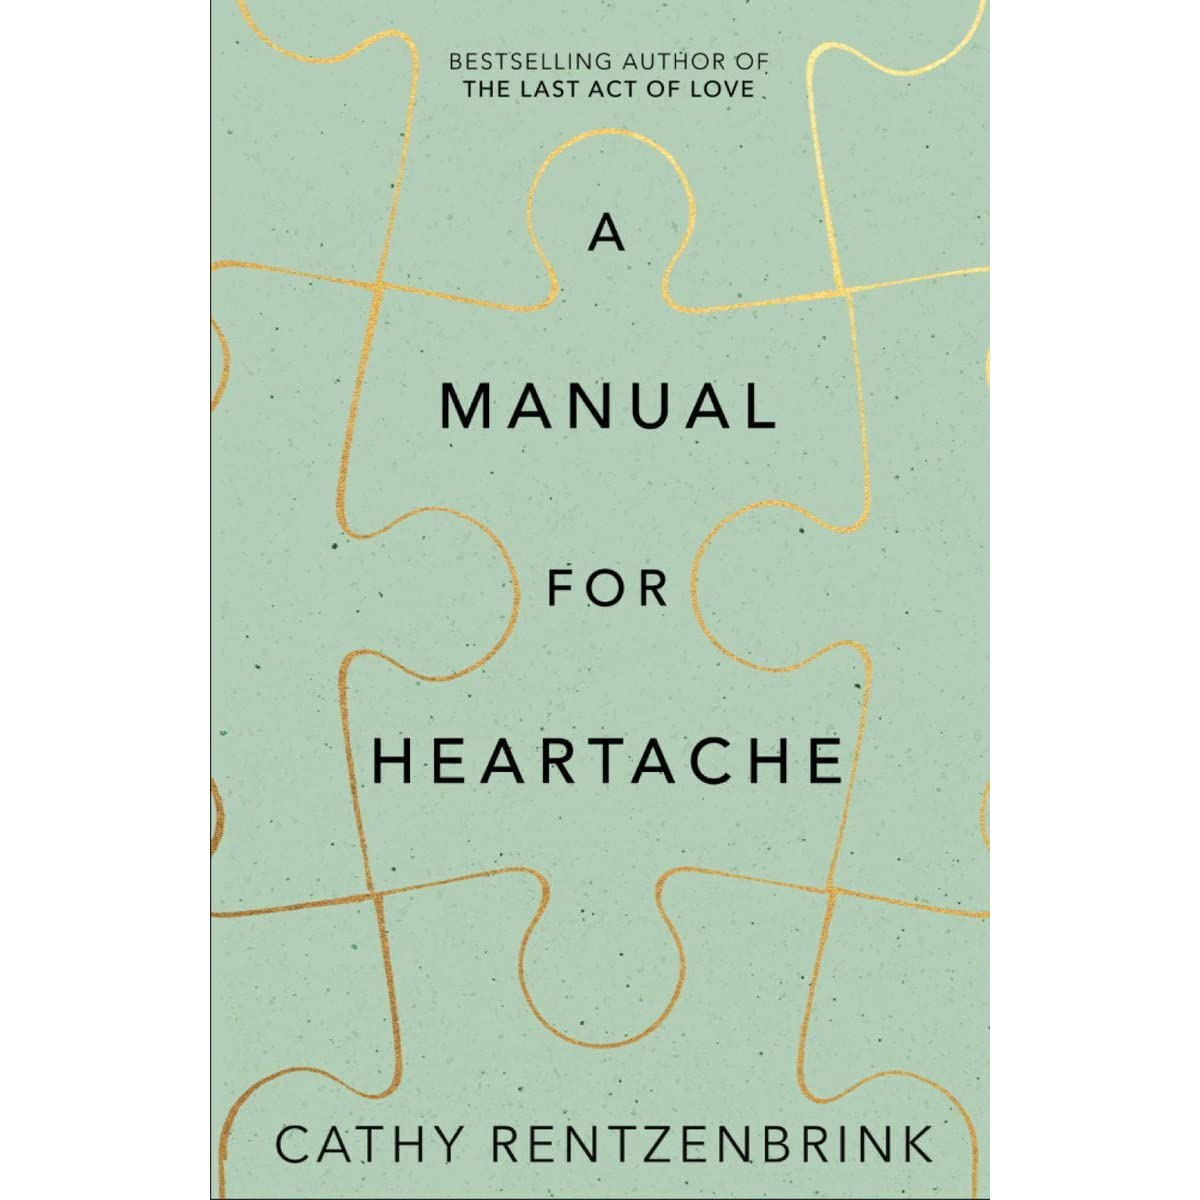 A Manual For Heartache By Cathy Rentzenbrink Overall Set